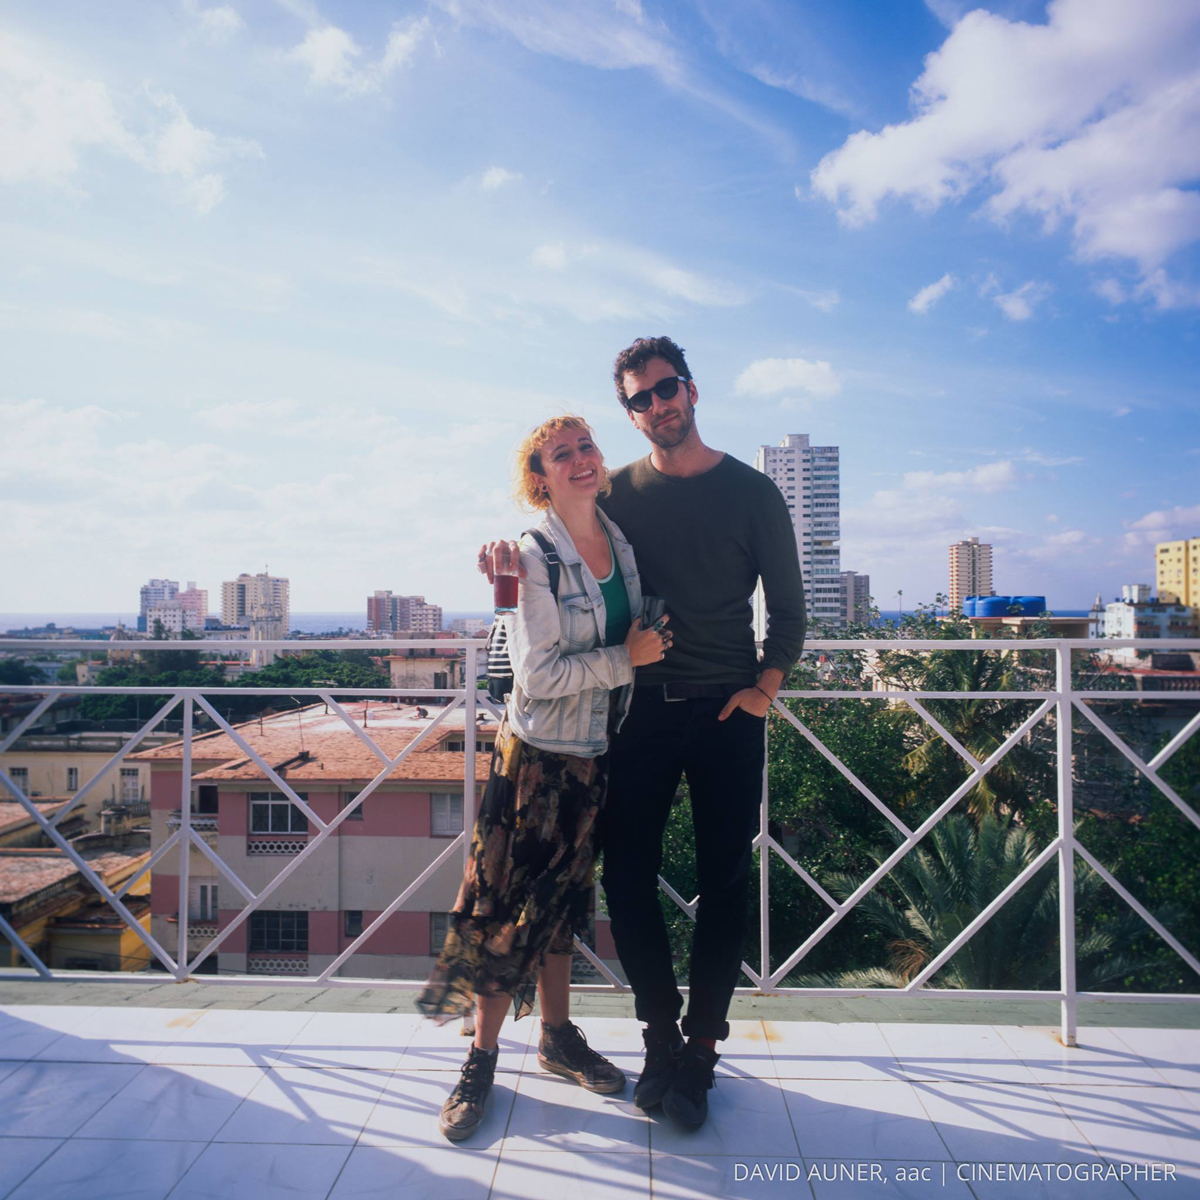 Kylie Shaffer and Charlie Cole standing together on a rooftop balcony with a big blue sky and buildings and trees behind them.